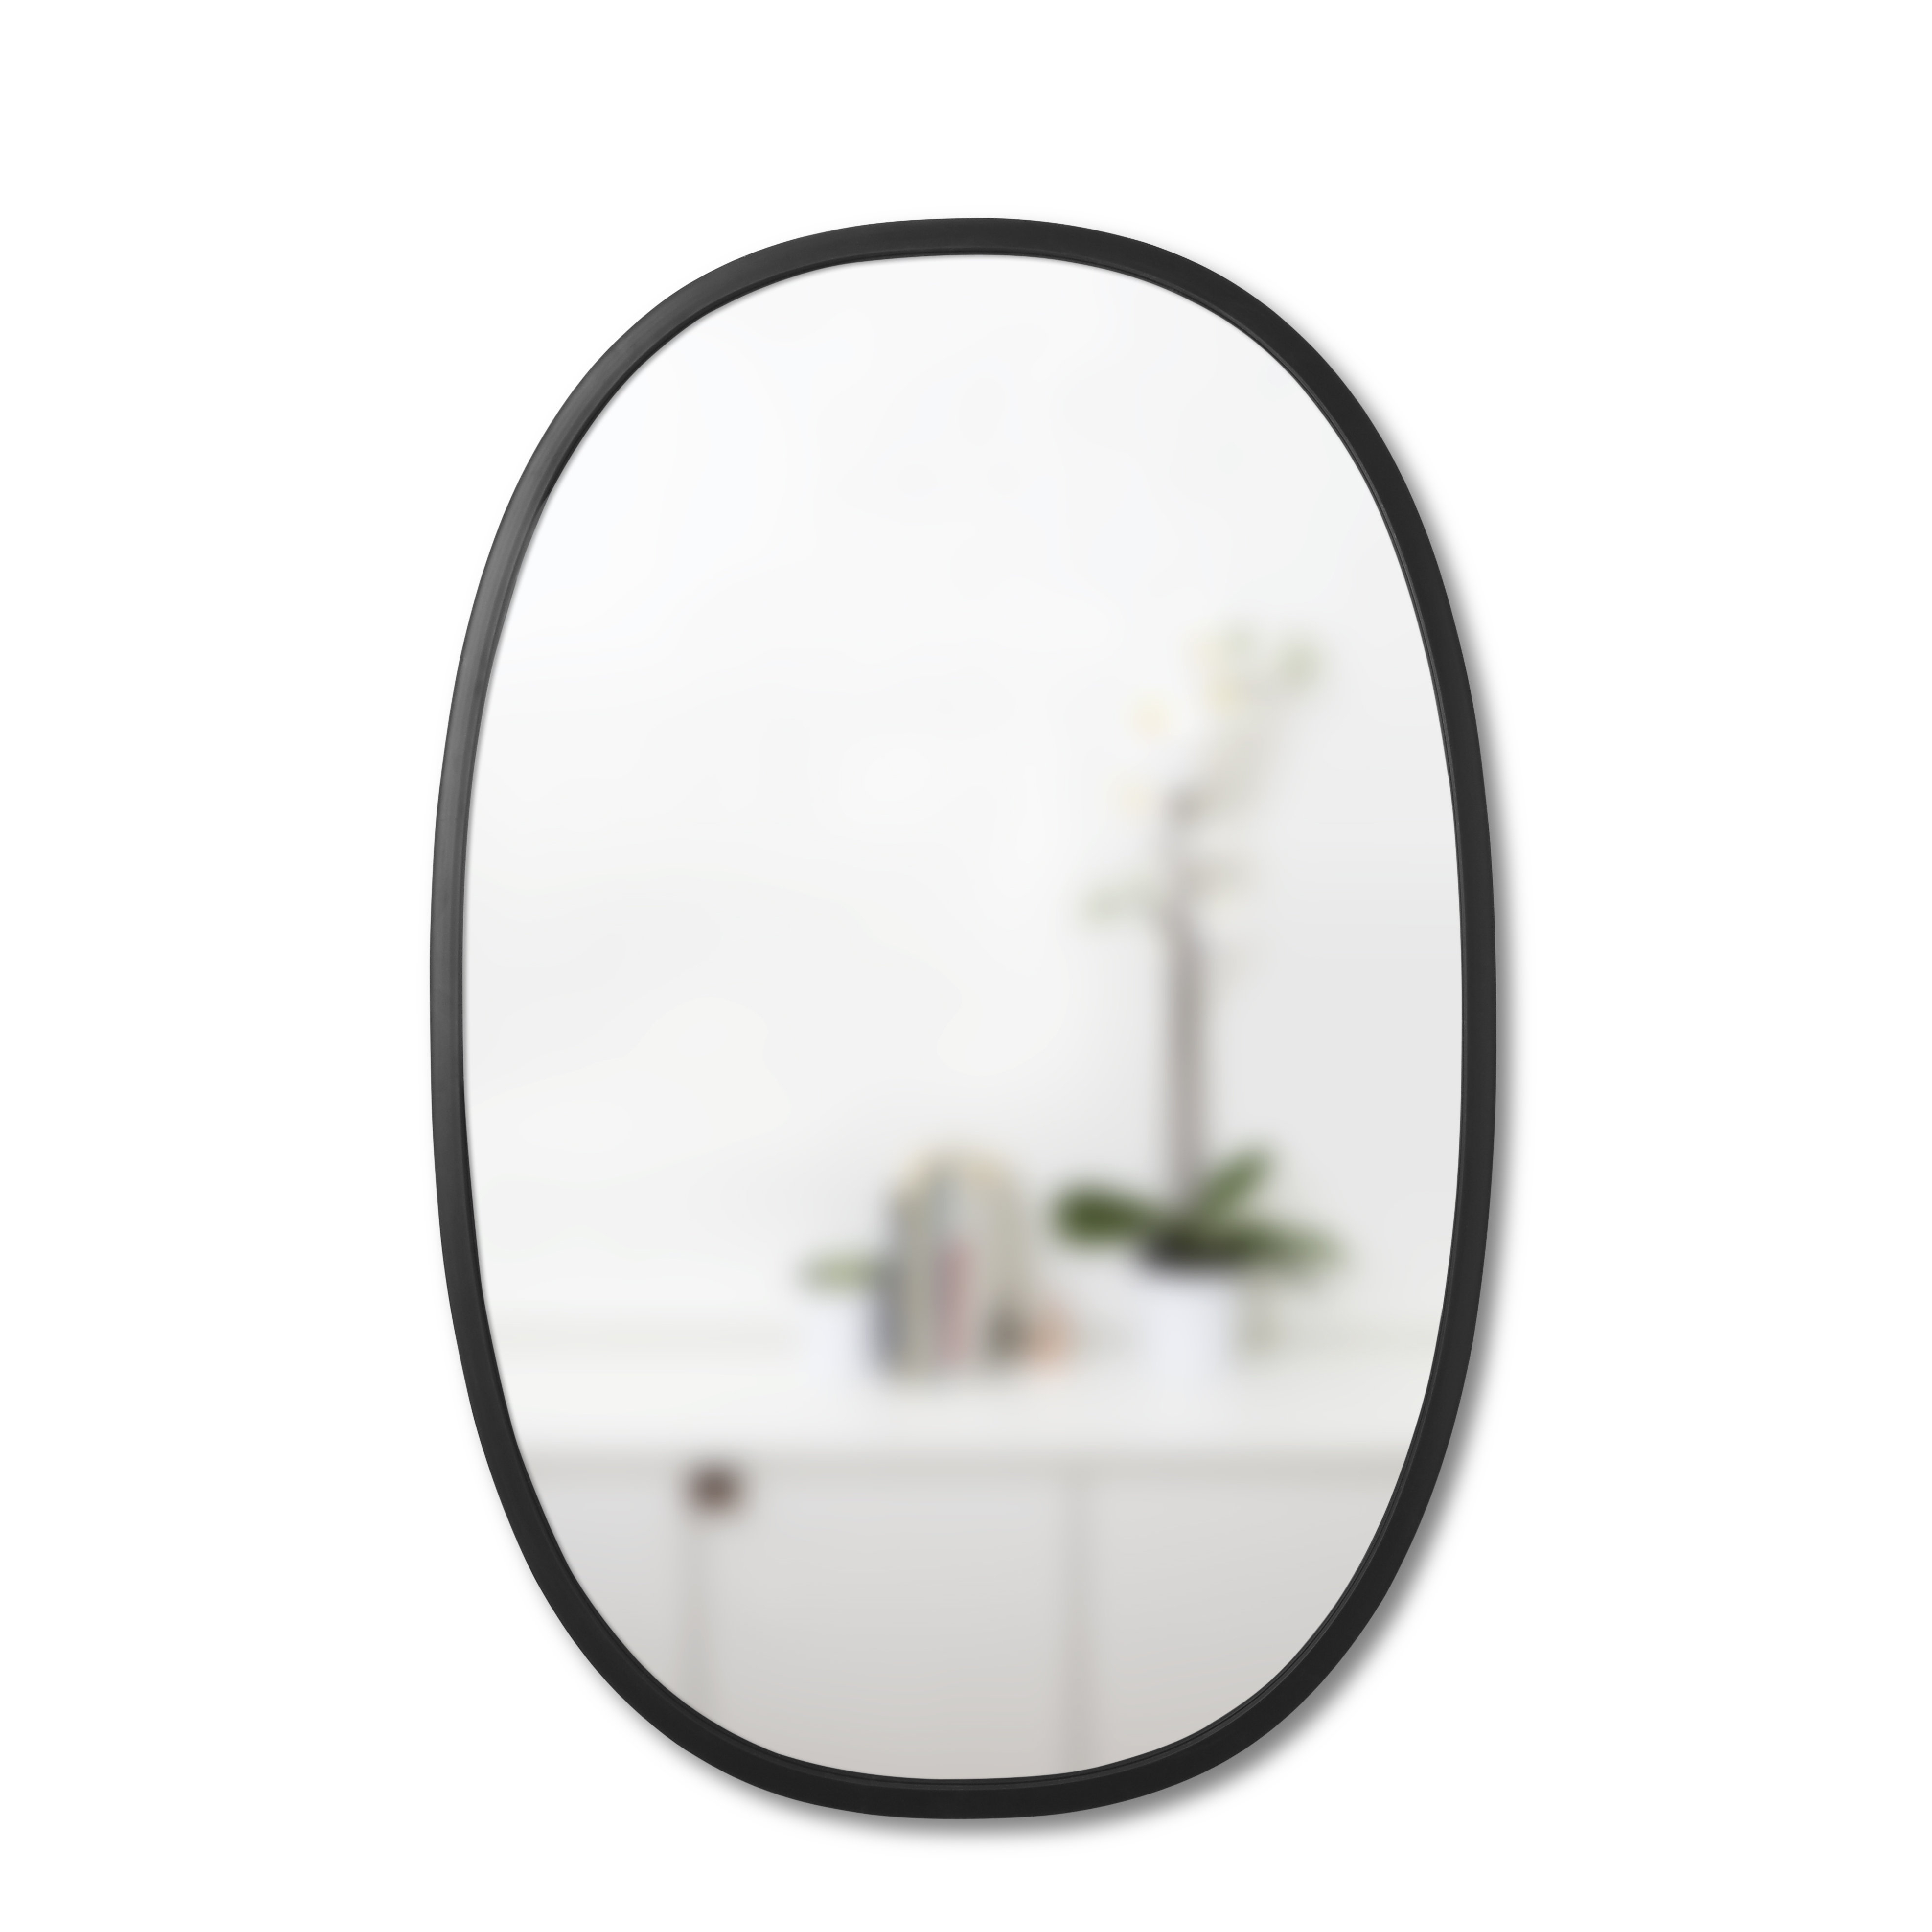 Umbra Hub Modern Contemporary Accent Mirror Pertaining To Menachem Modern & Contemporary Accent Mirrors (View 20 of 20)